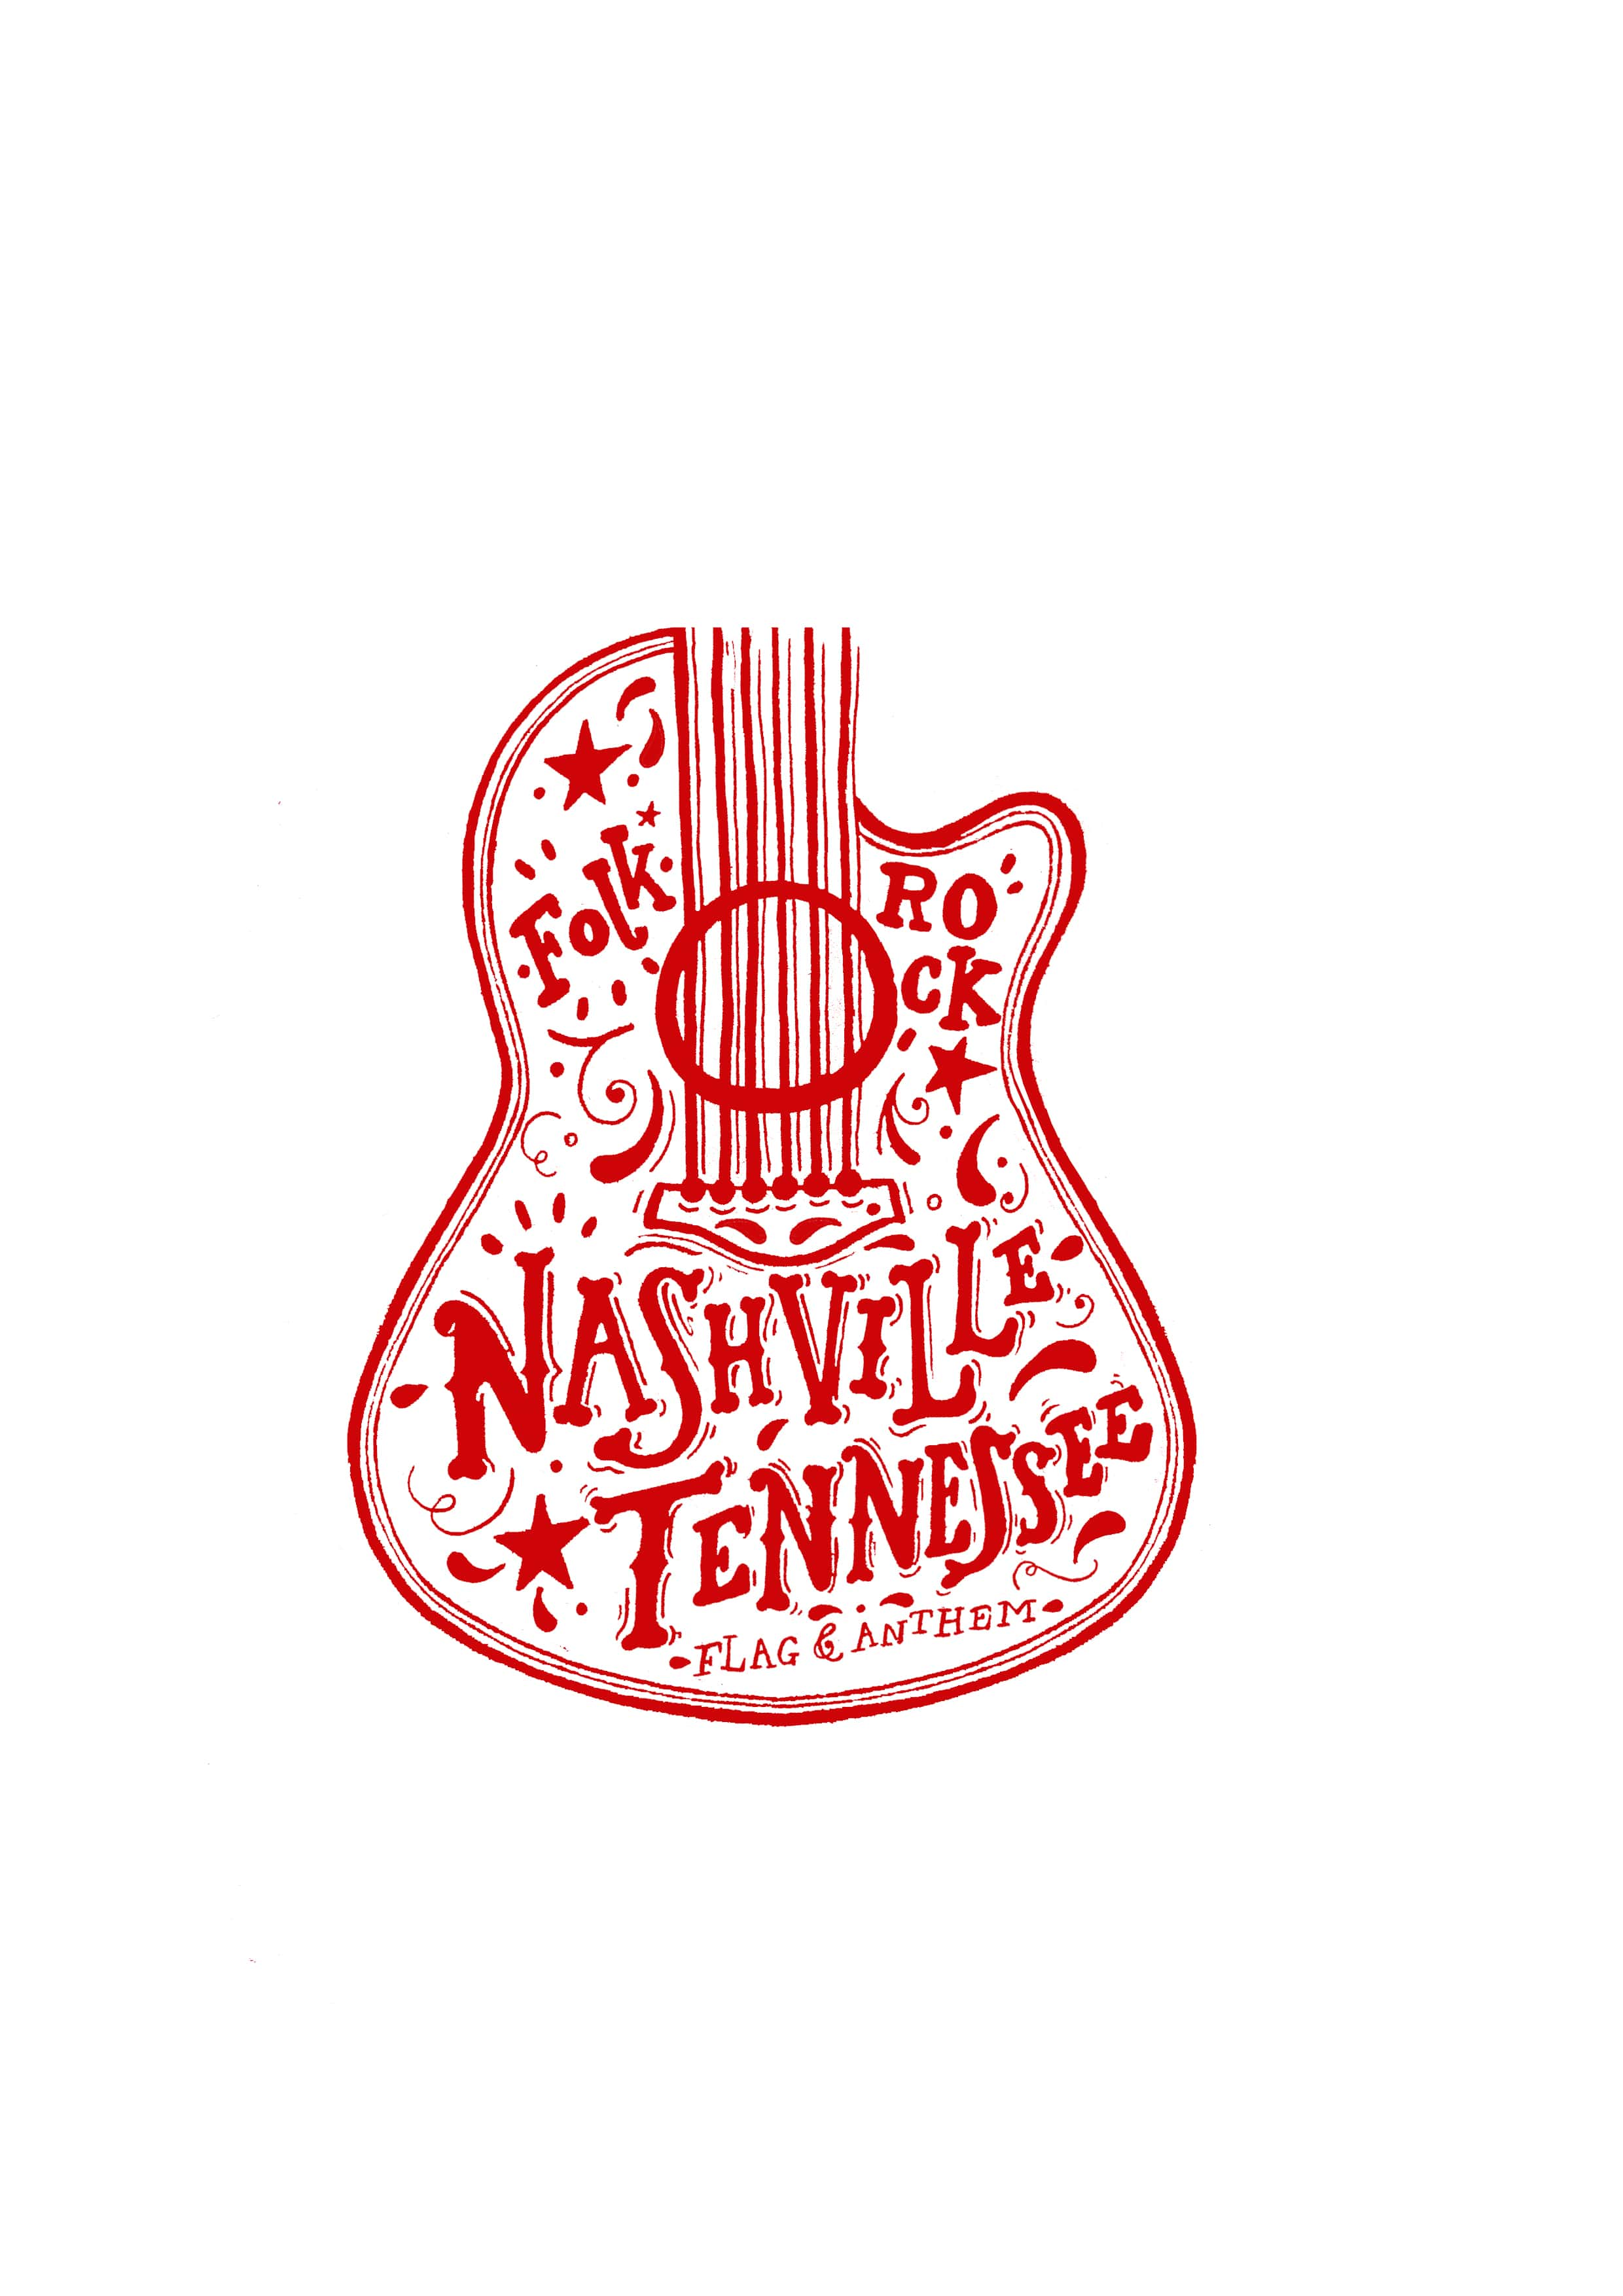 Folk Rock Nashville Tennessee - Nashville Typographic Illustration for Flag & Anthem Clothing, 2016.